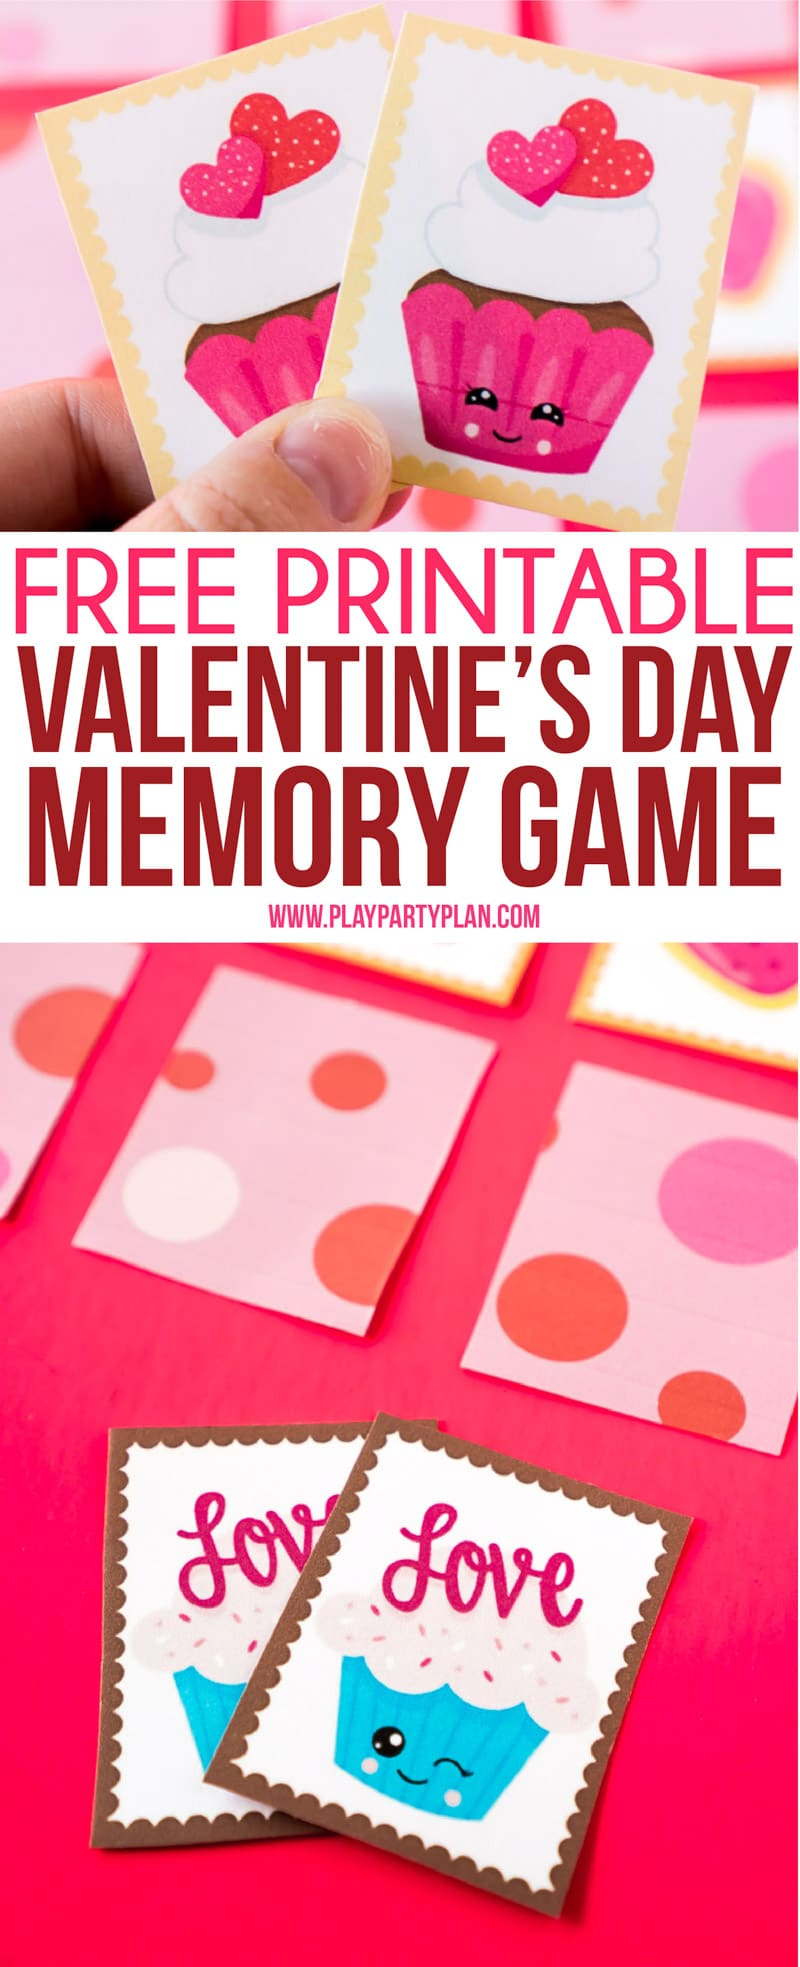 Fun Valentine's Day memory game for kids or for seniors! Simply print out the cute Valentine's Day themed cards, set them out, and see who can find the most matches first! One of the easiest Valentine's Day games ever! Perfect for school classroom parties. #ValentinesDay #kidsgames #Printables #kidsactivities via @playpartyplan